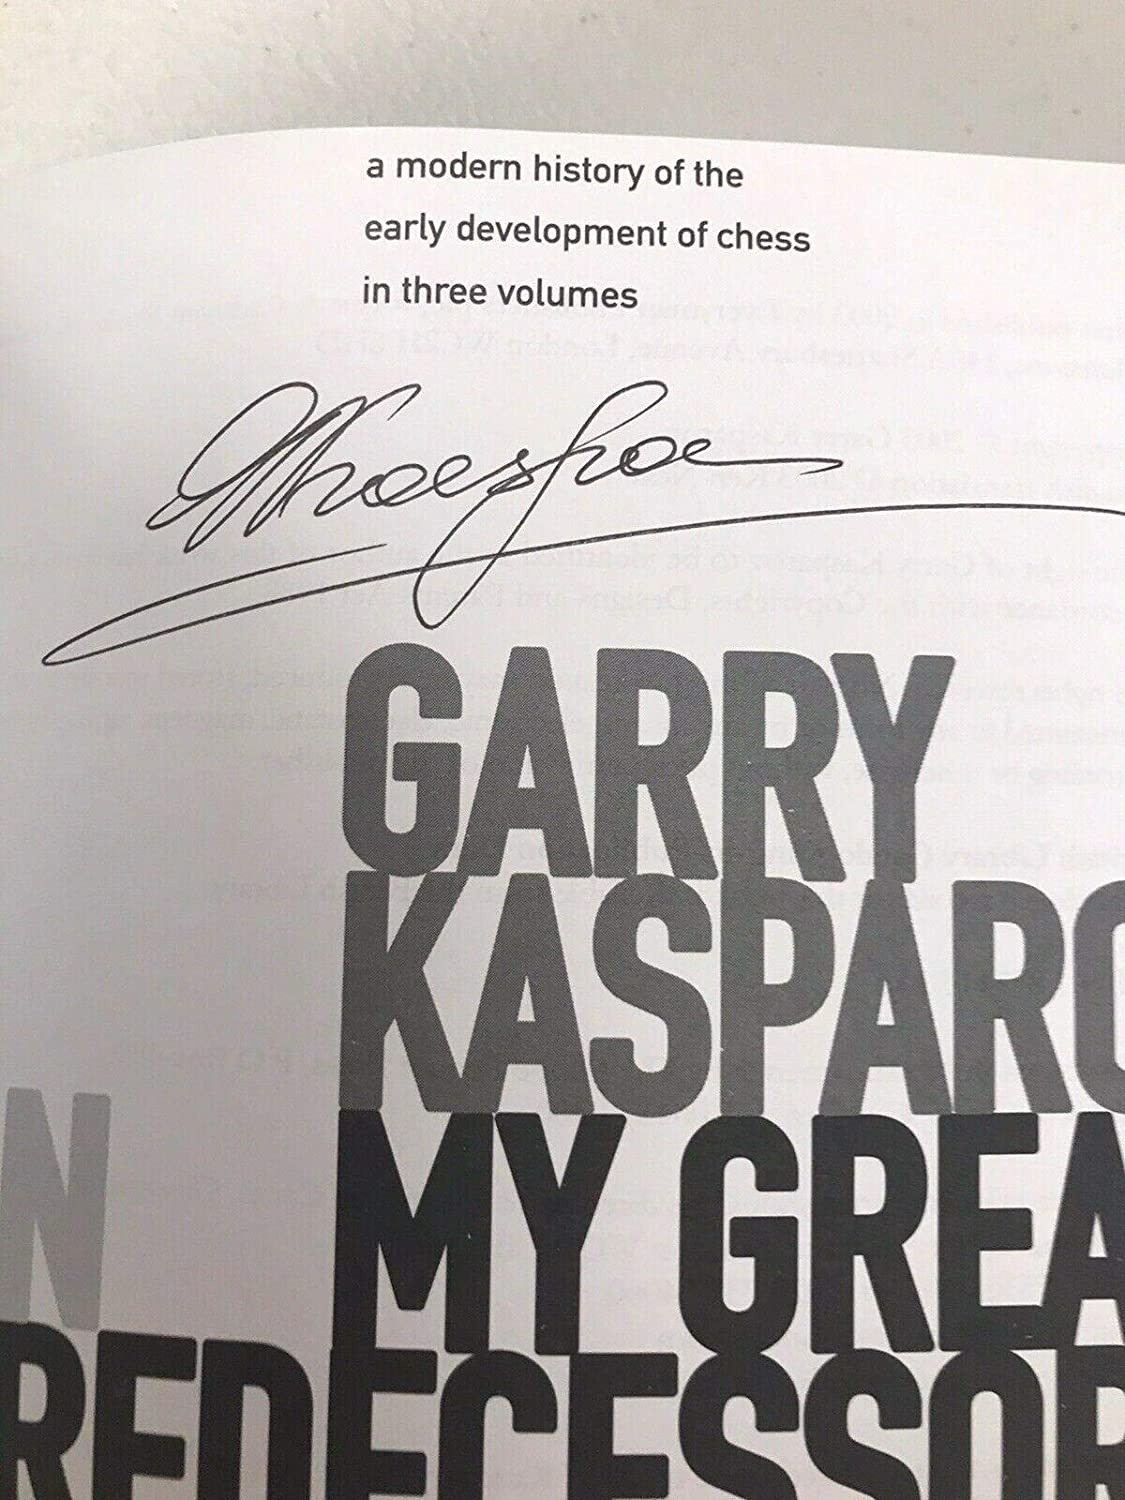 Garry Kasparov Signed Book My Predecessors Part 1 Chess Champion Autograph - JSA Certified - Autographed Sports Magazines